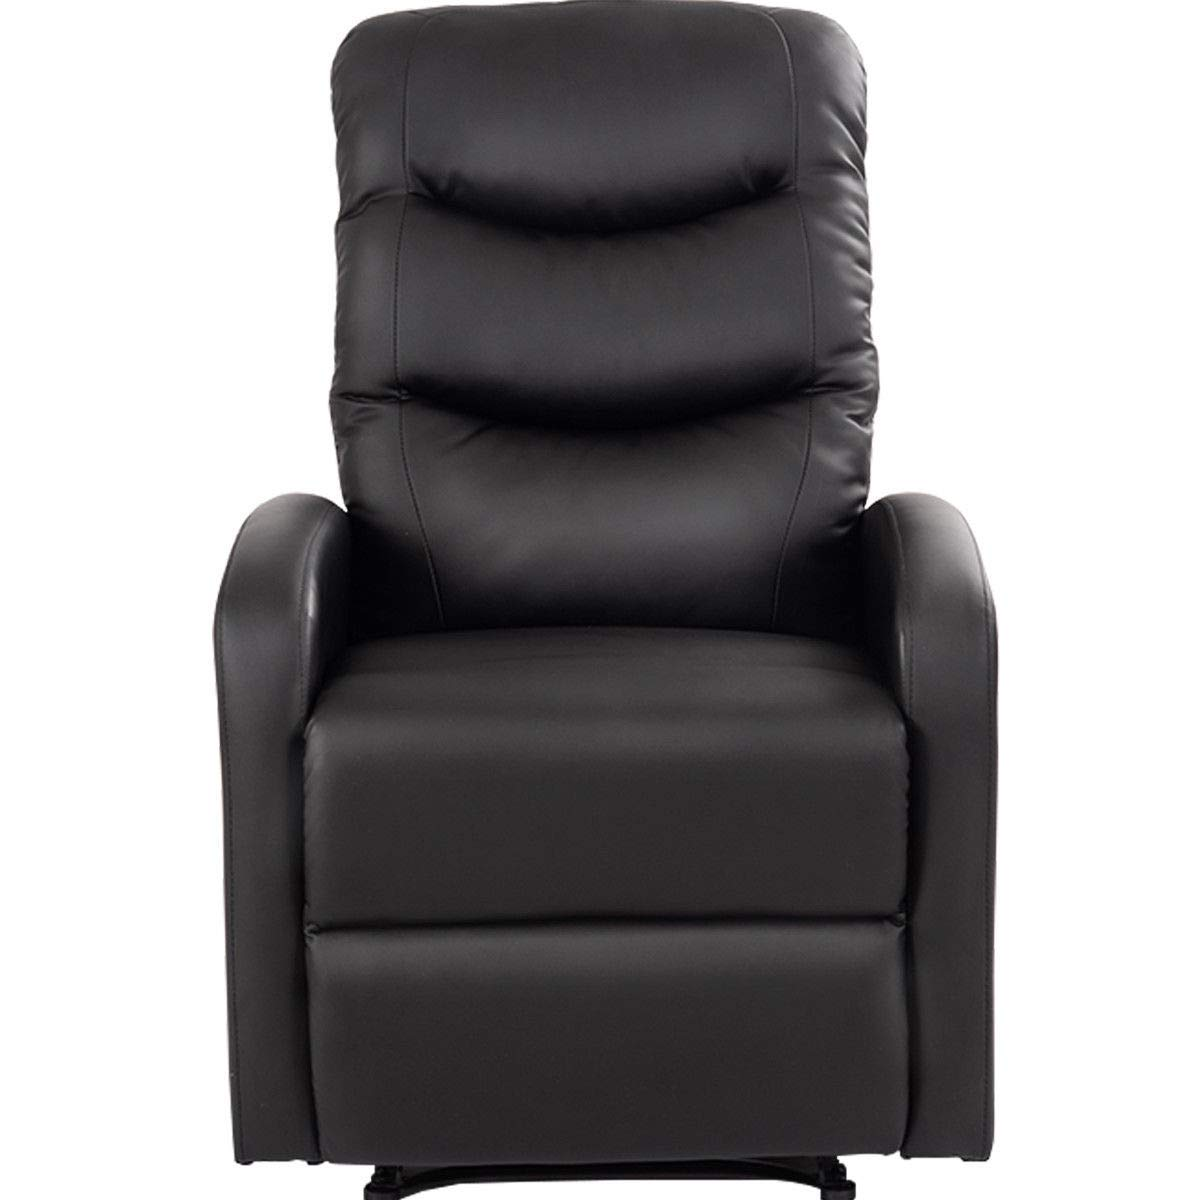 GHP 330-Lbs Capacity Black PU Leather Padded Seat Recliner Chair w Foldable Footrest